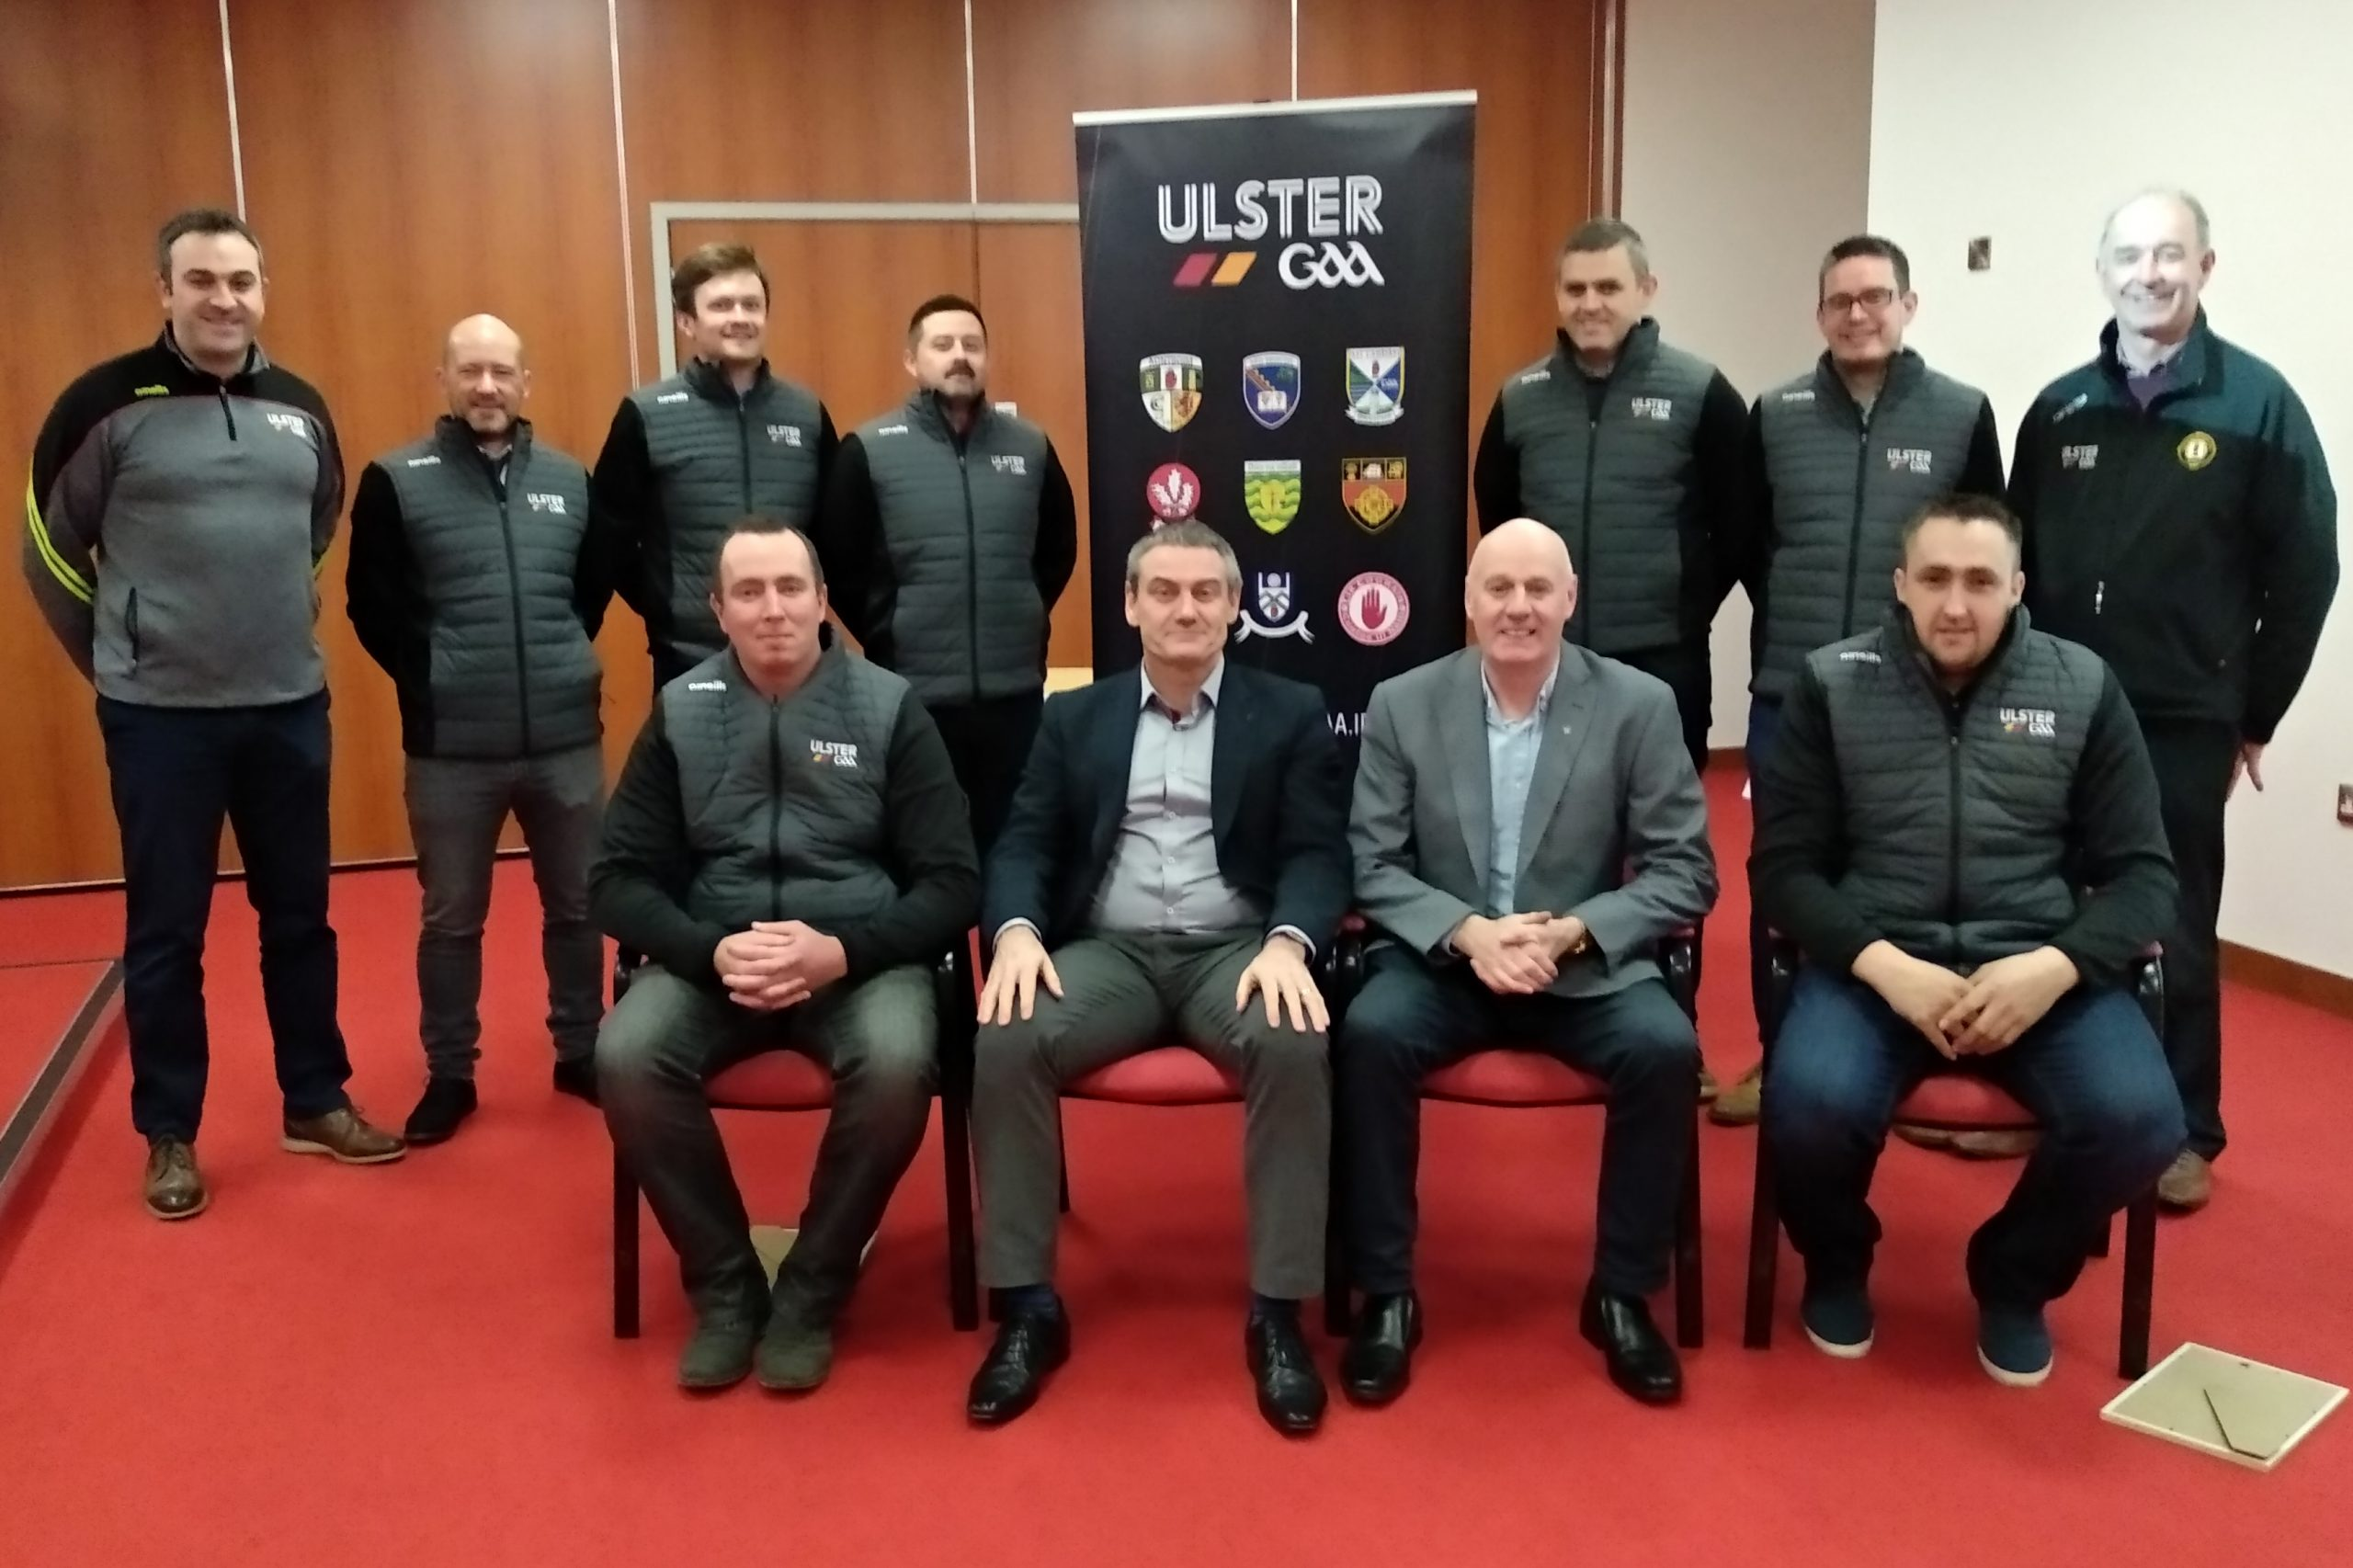 Seven referees graduate from Ulster GAA Referee Academy